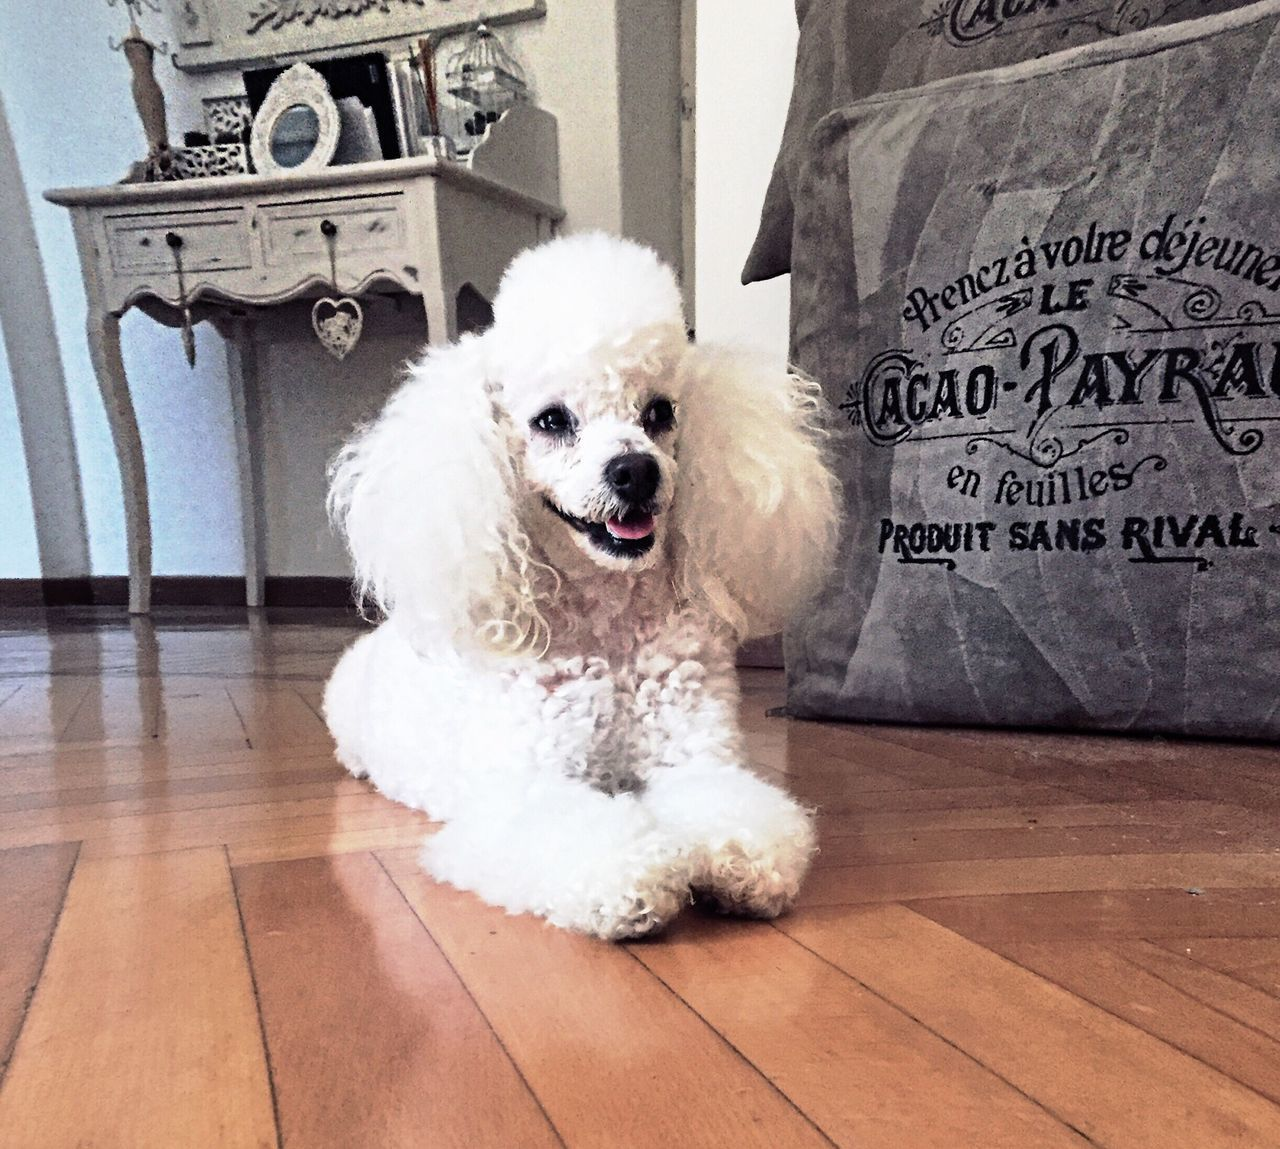 Dog Poodle Toy Poodletoy Poodlemania Puppy Pet Leisure Home Love Pose